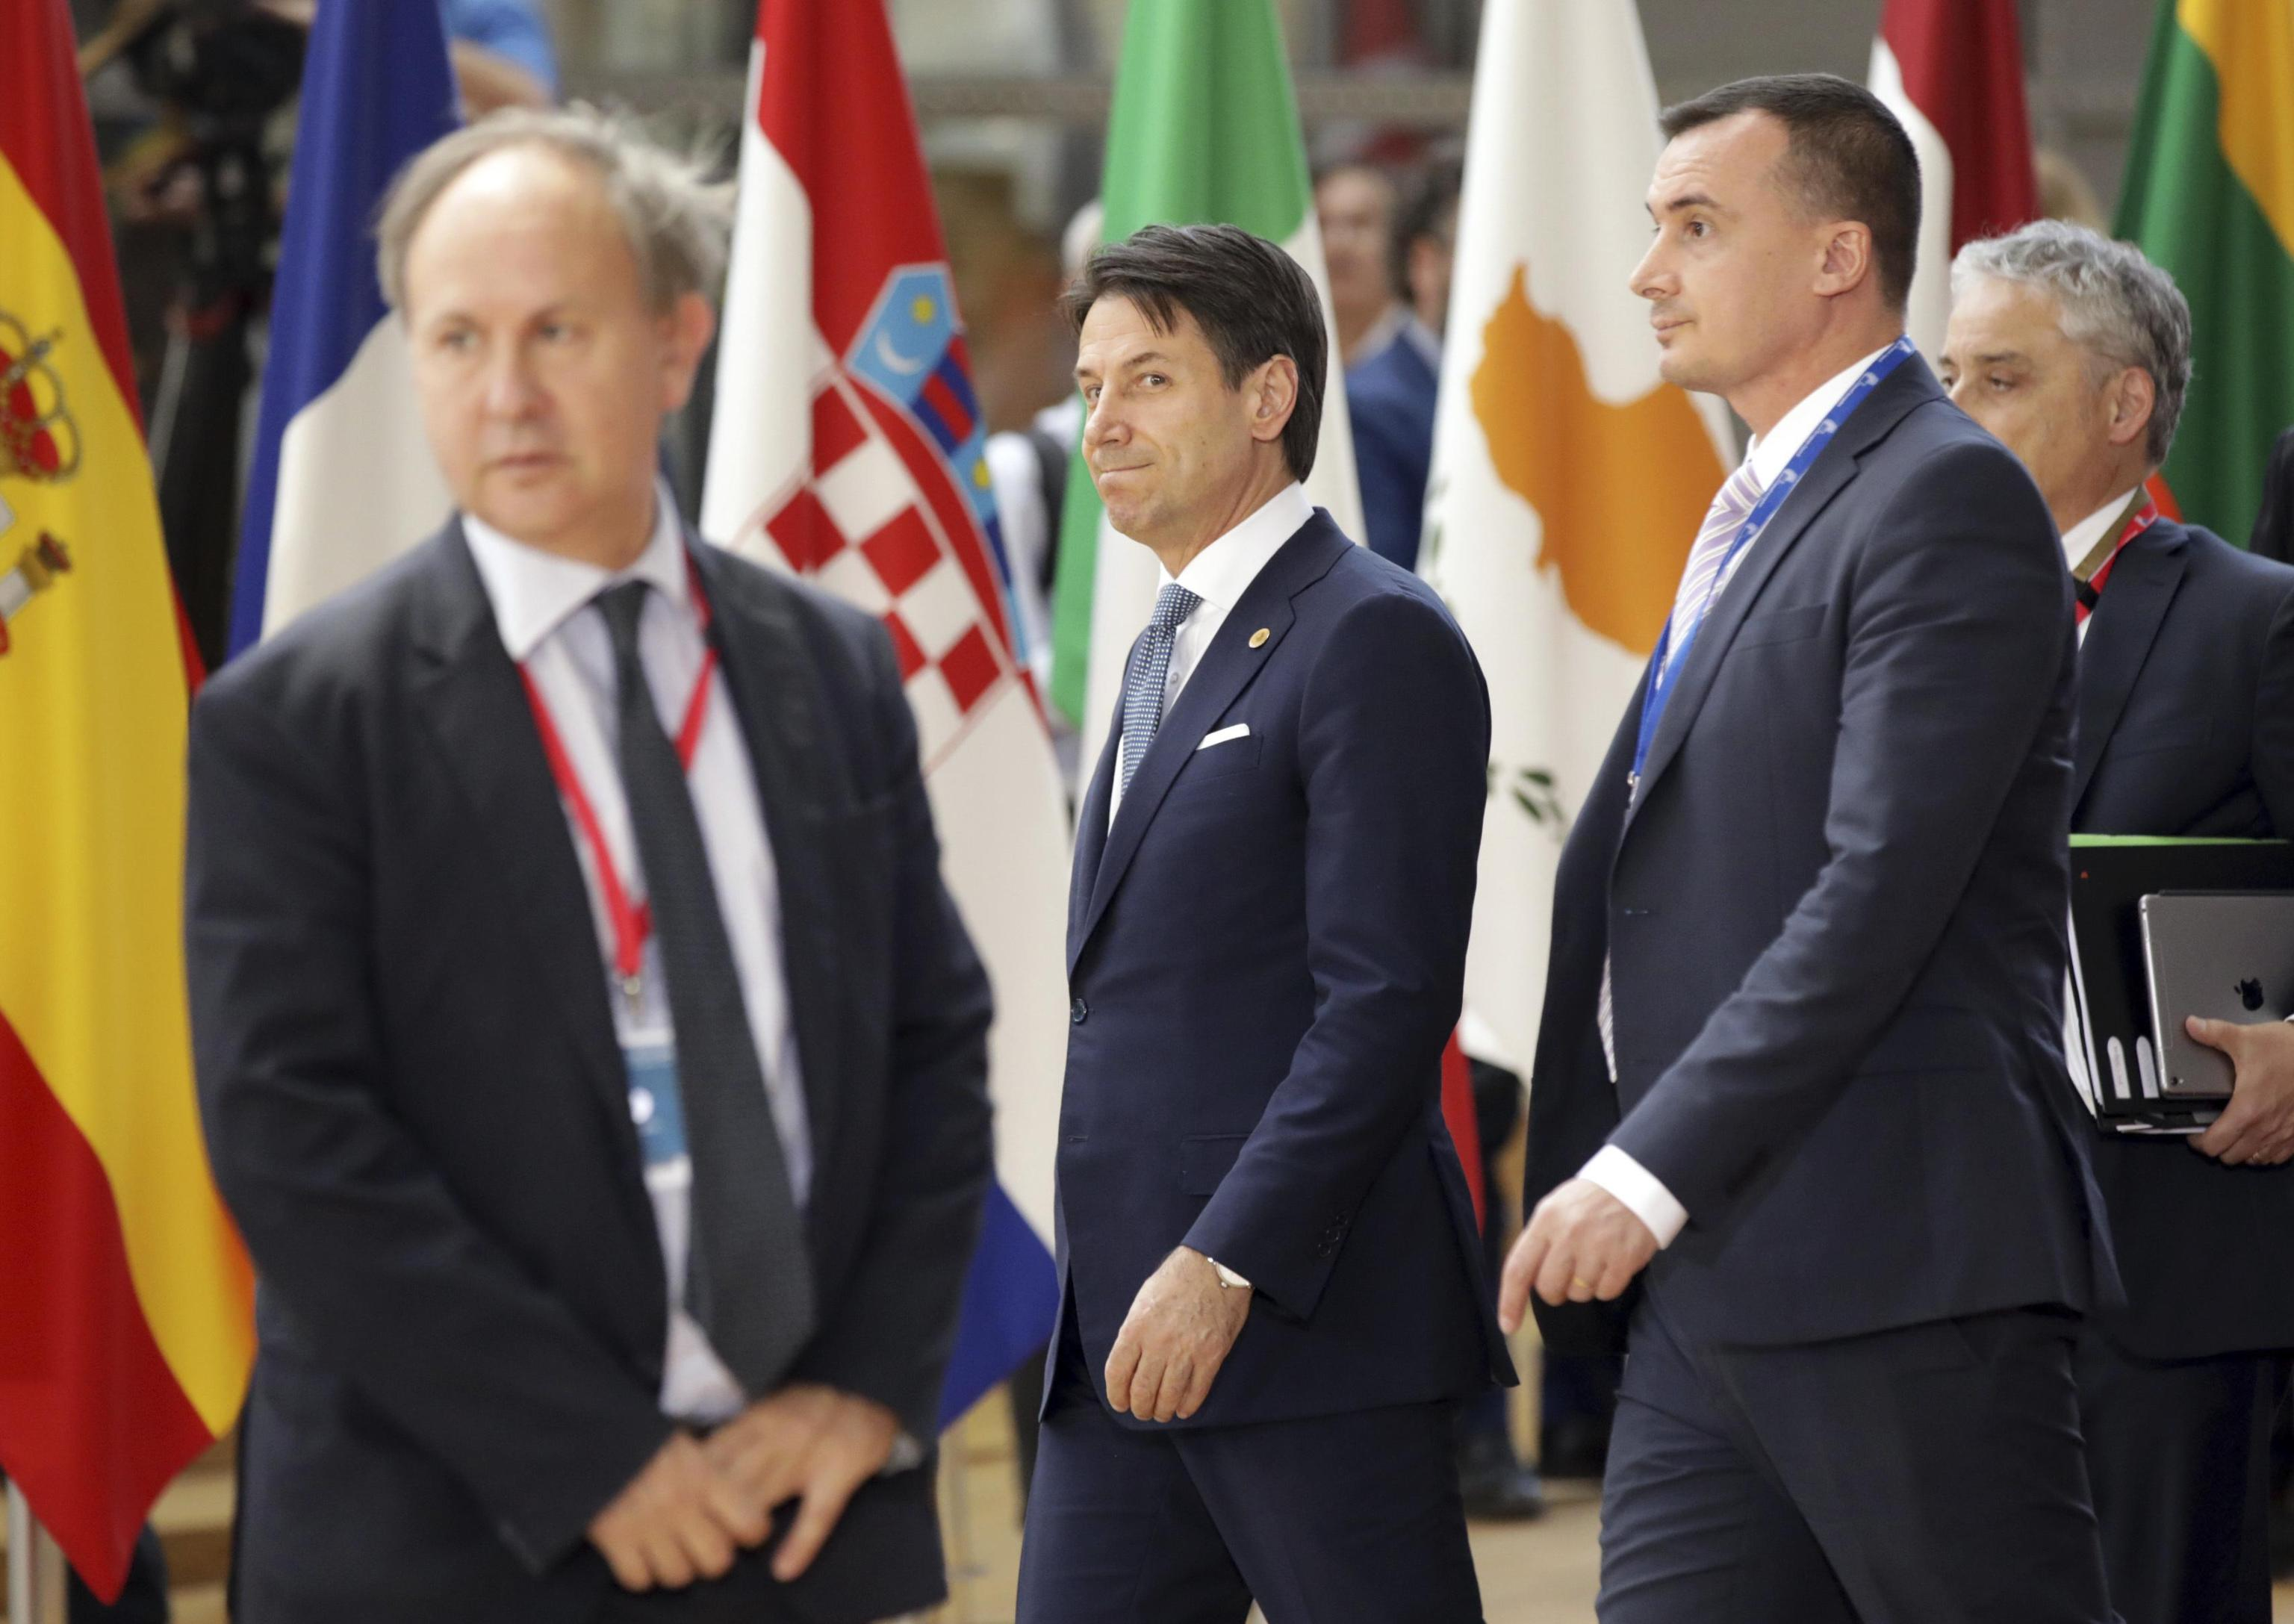 conte-summit-europeo